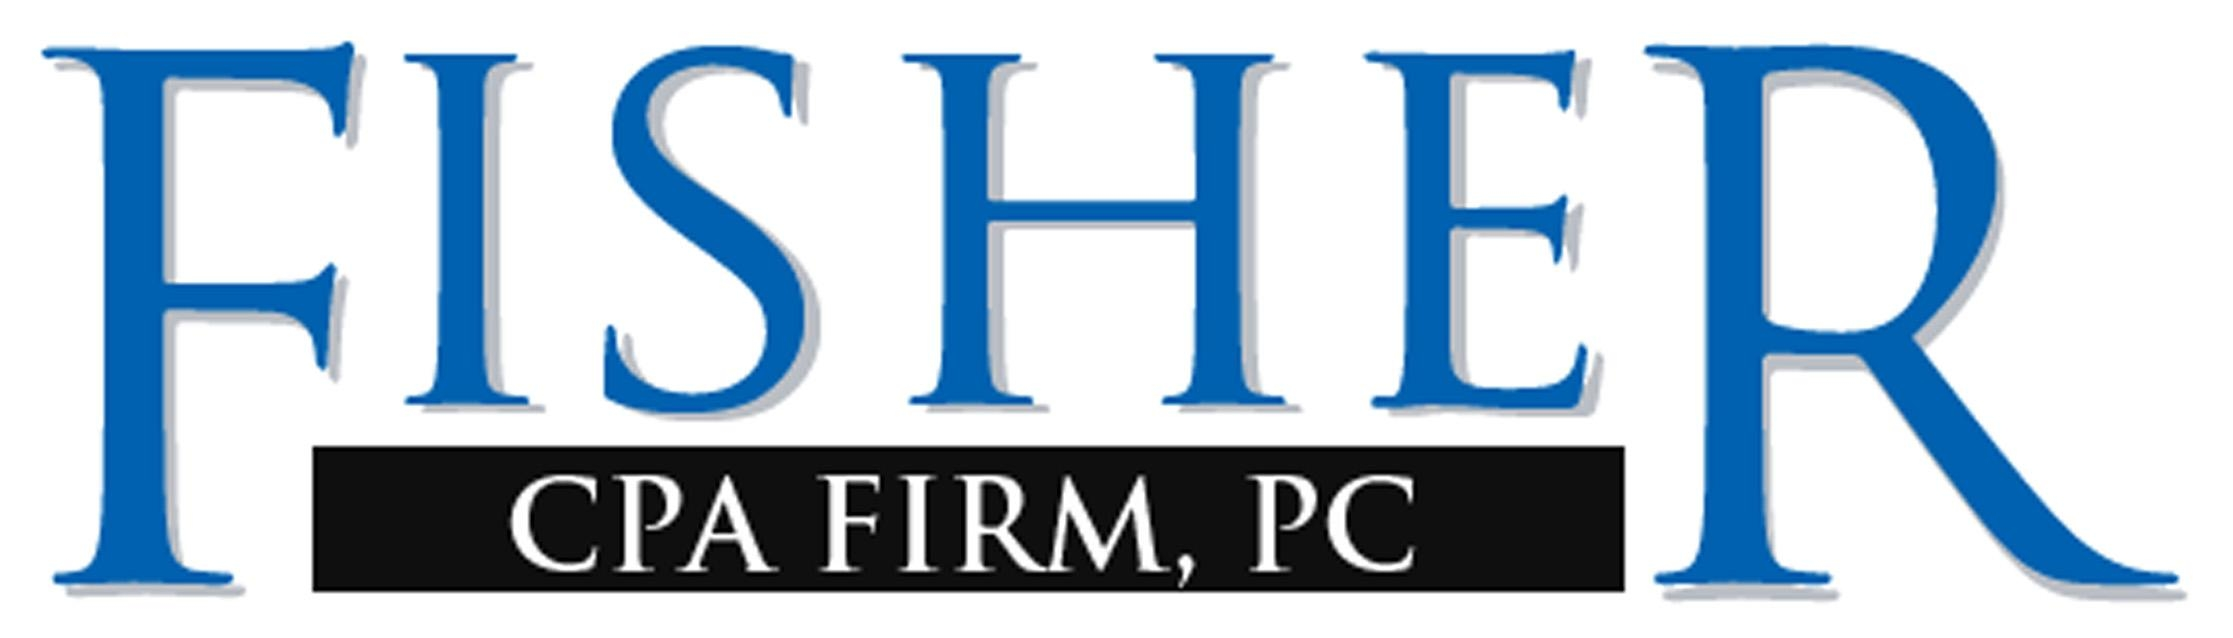 Fisher CPA Firm, PC